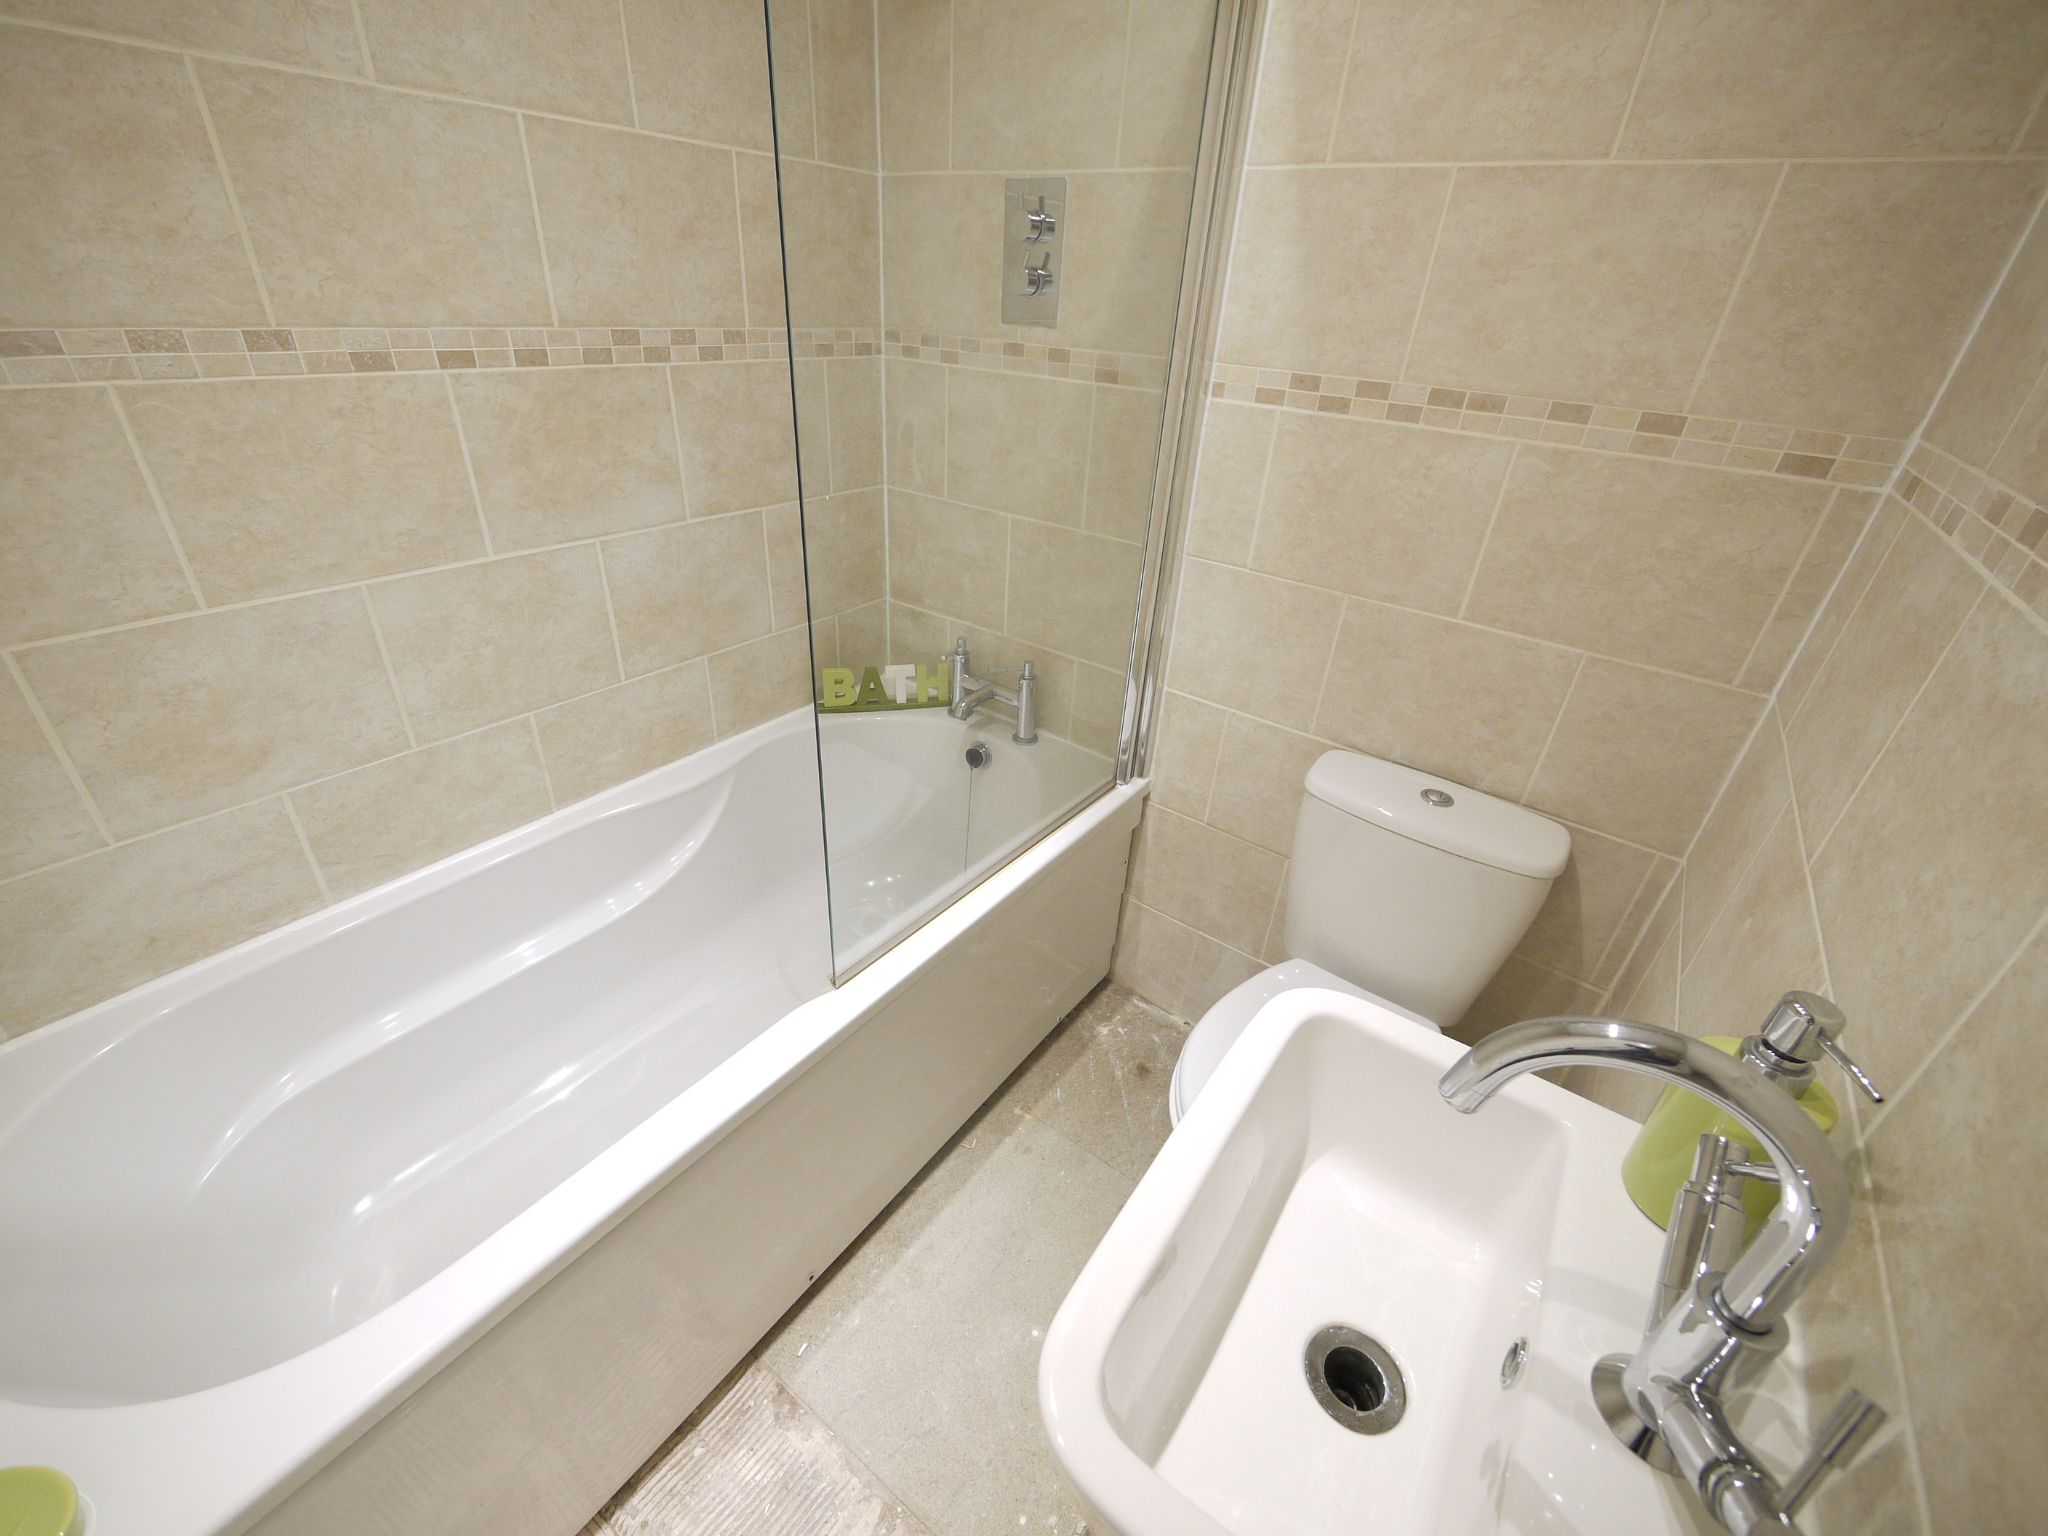 4 bedroom town house For Sale in Brighouse - Ground Floor Bathroom.